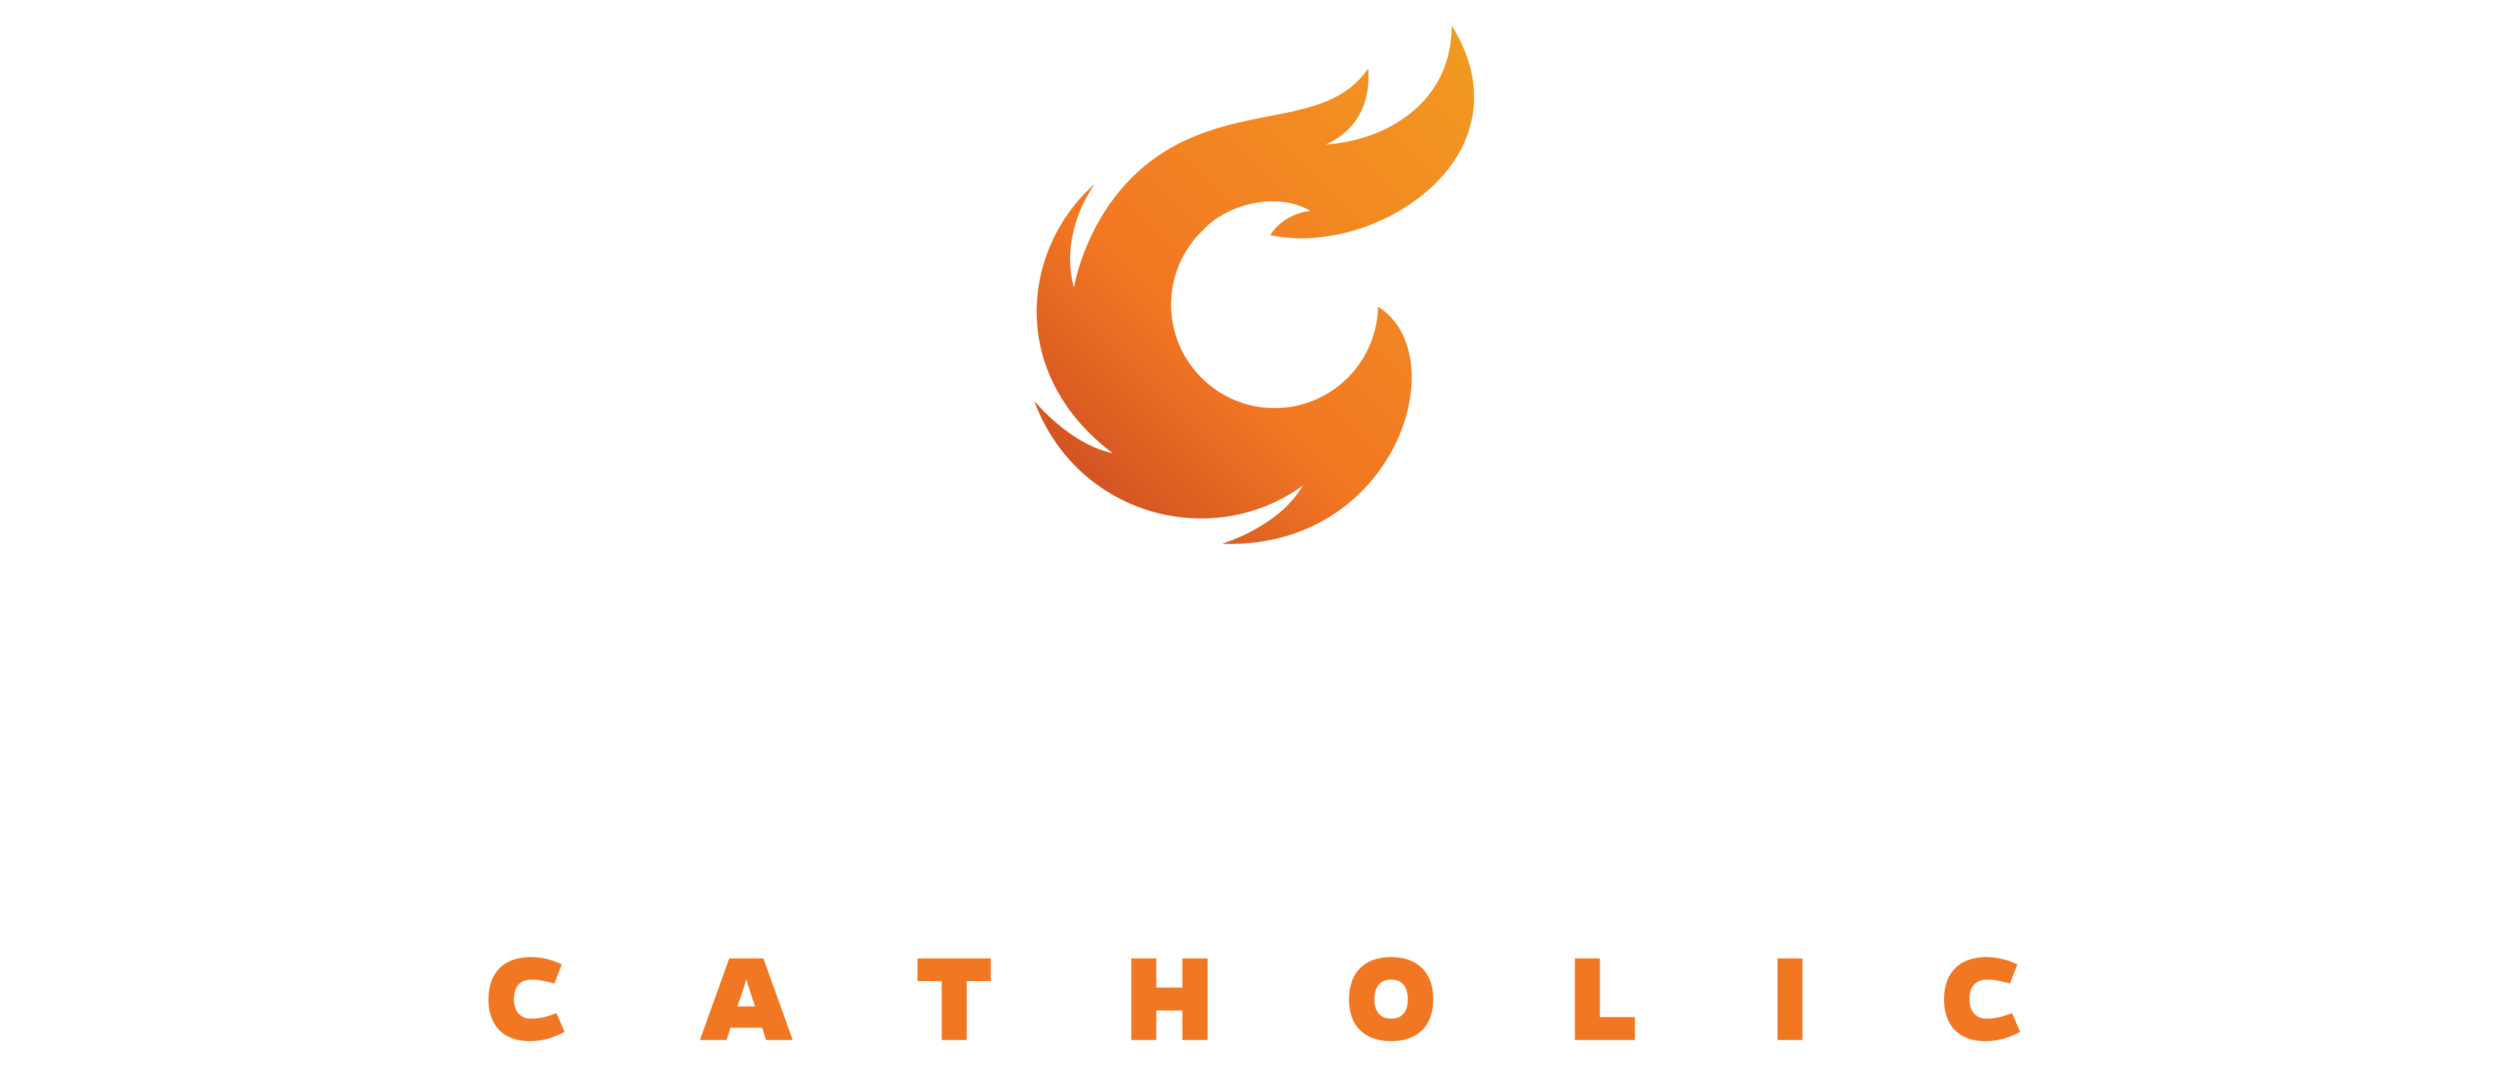 CatalystCatholicLogo-cropped-02.png